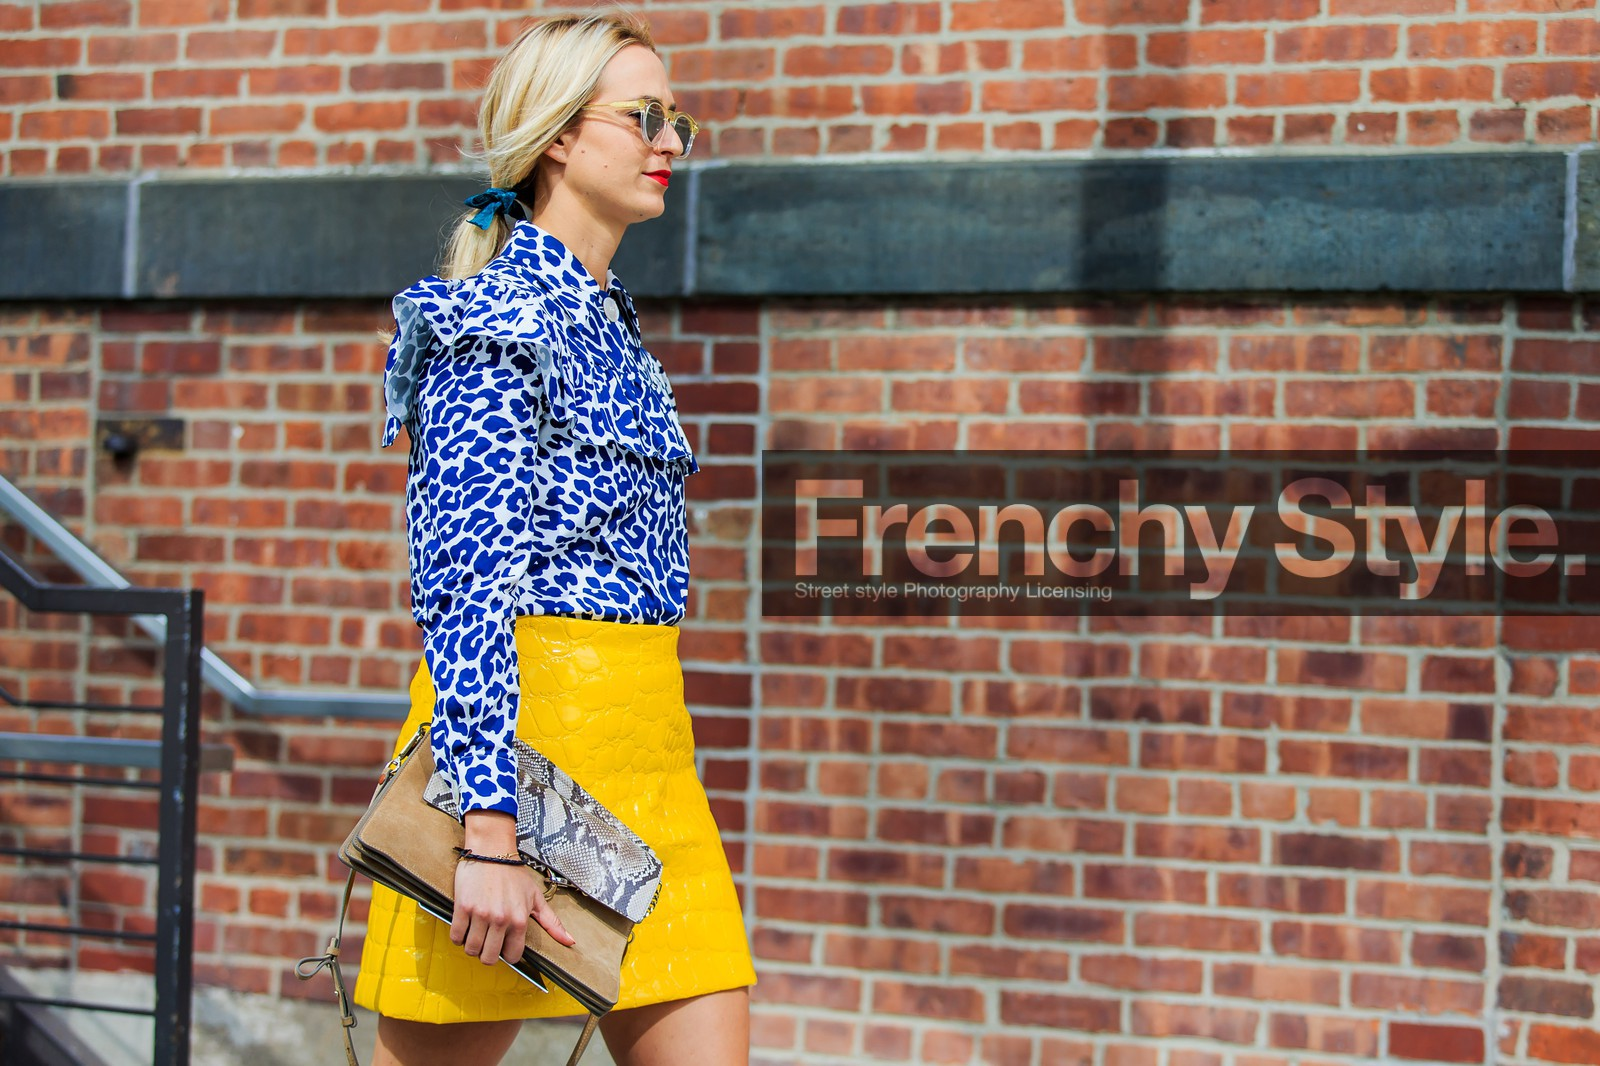 animal print, atmosphere details, blue, blue klein, camel bag, chloe, fashion week, frenchystyle, FW, horizontal, jonathan paciullo, leather bag, leather skirt, leopard, miu miu, navy, NEW YORK, NYFW, over the knee skirt, snake, SPRING SUMMER 2016, SS 16, street style, white, woman, yellow